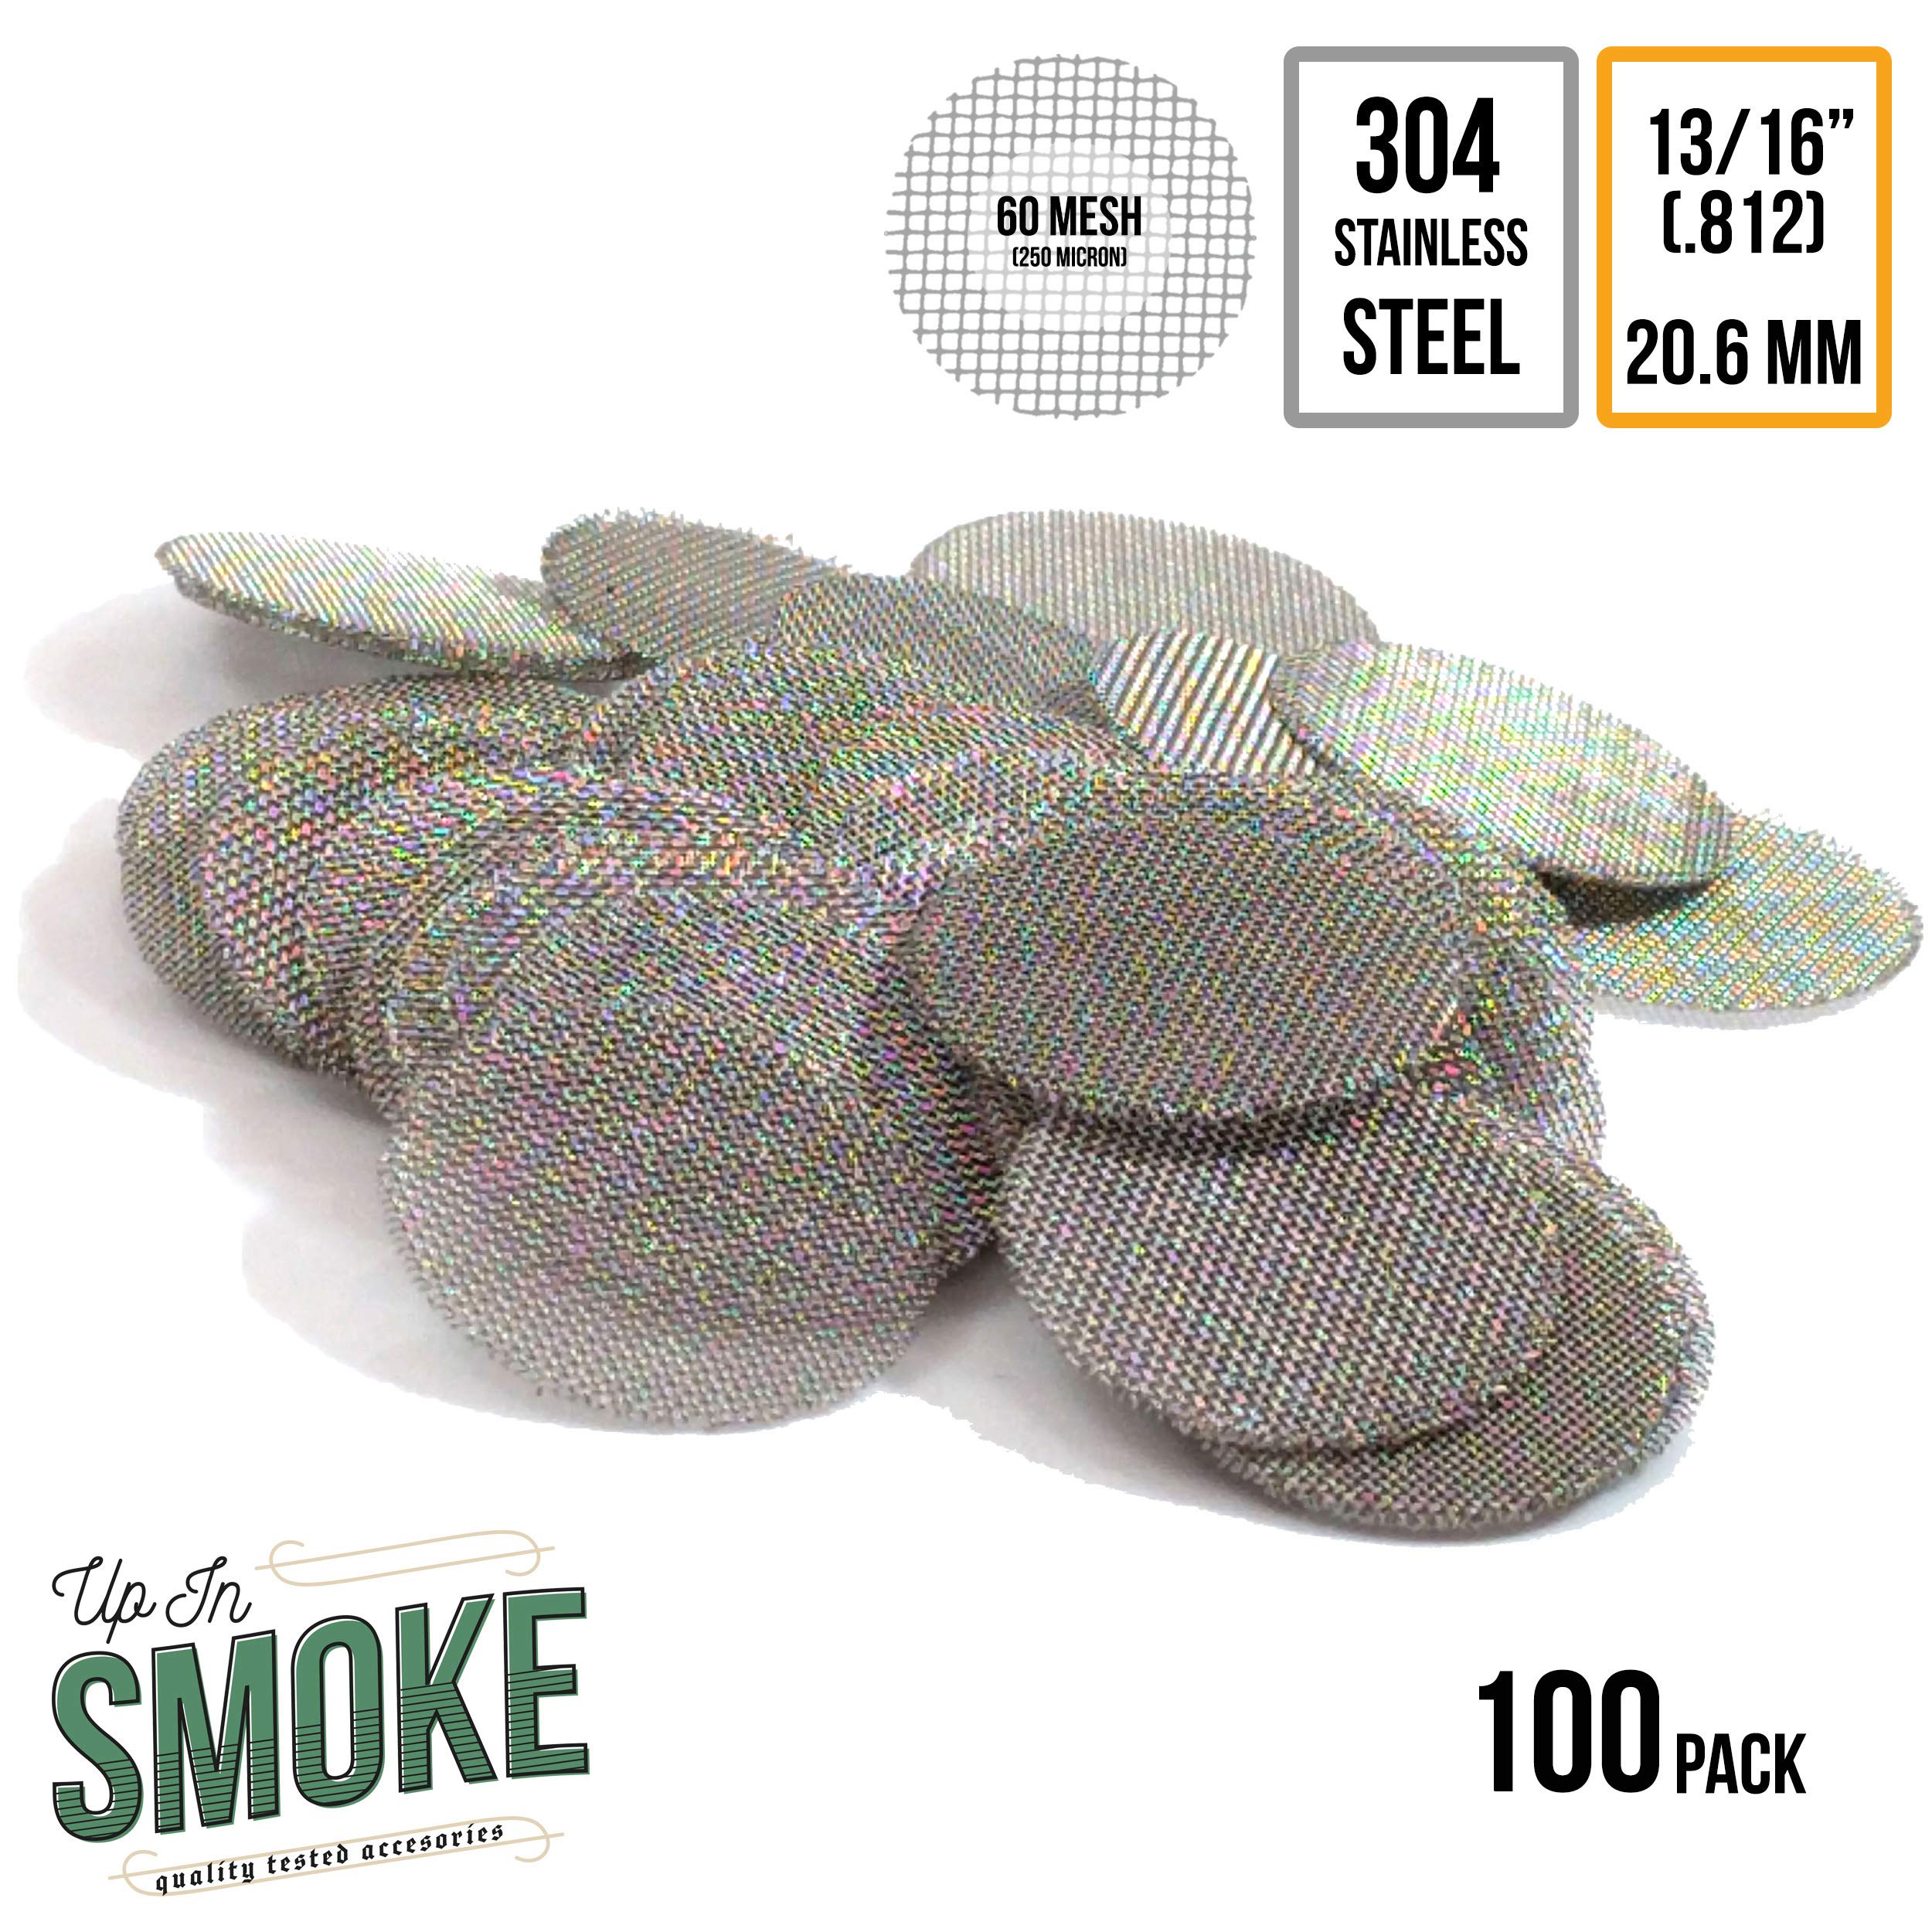 Made in the USA - 100 13/16''(.812) 304 Stainless Steel Premium Pipe Screen Filters by Up in Smoke Pipe Screens